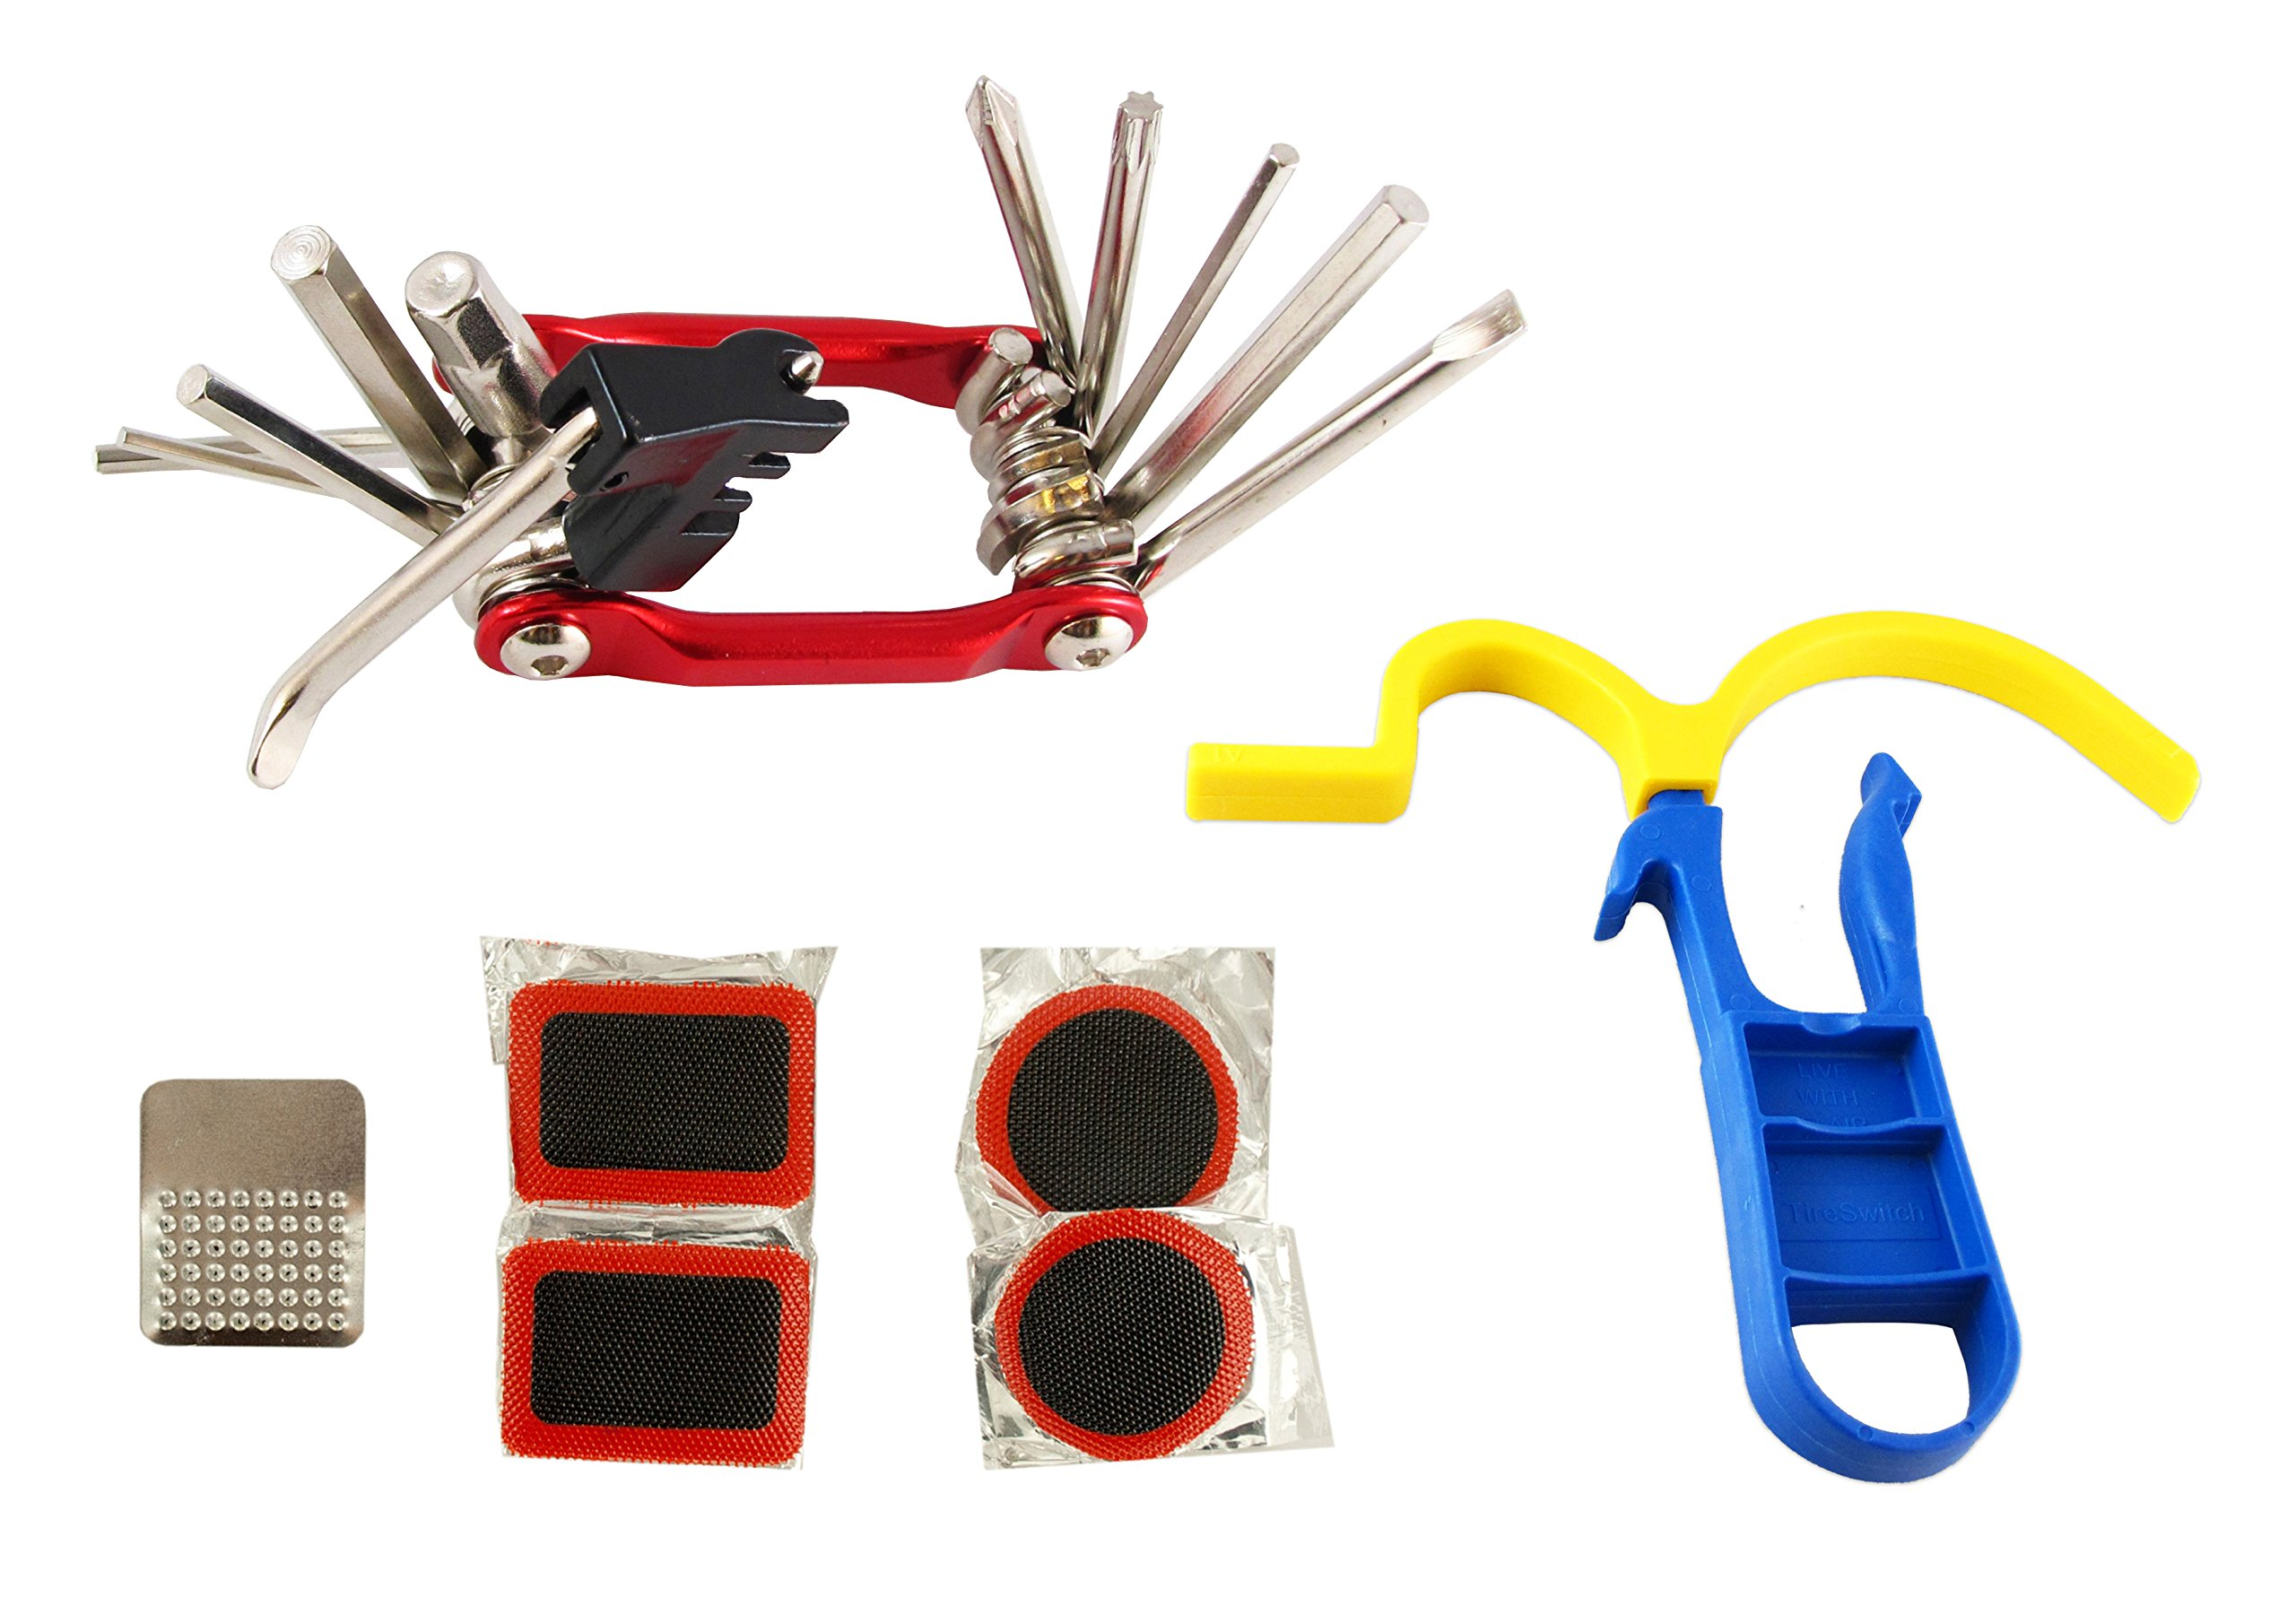 Bicycle Tire Repair Kit with TireSwitch, Portable Multi-tool and Patches - Easy, Quick and Without Puncture in the Tire Repairing Bike Set